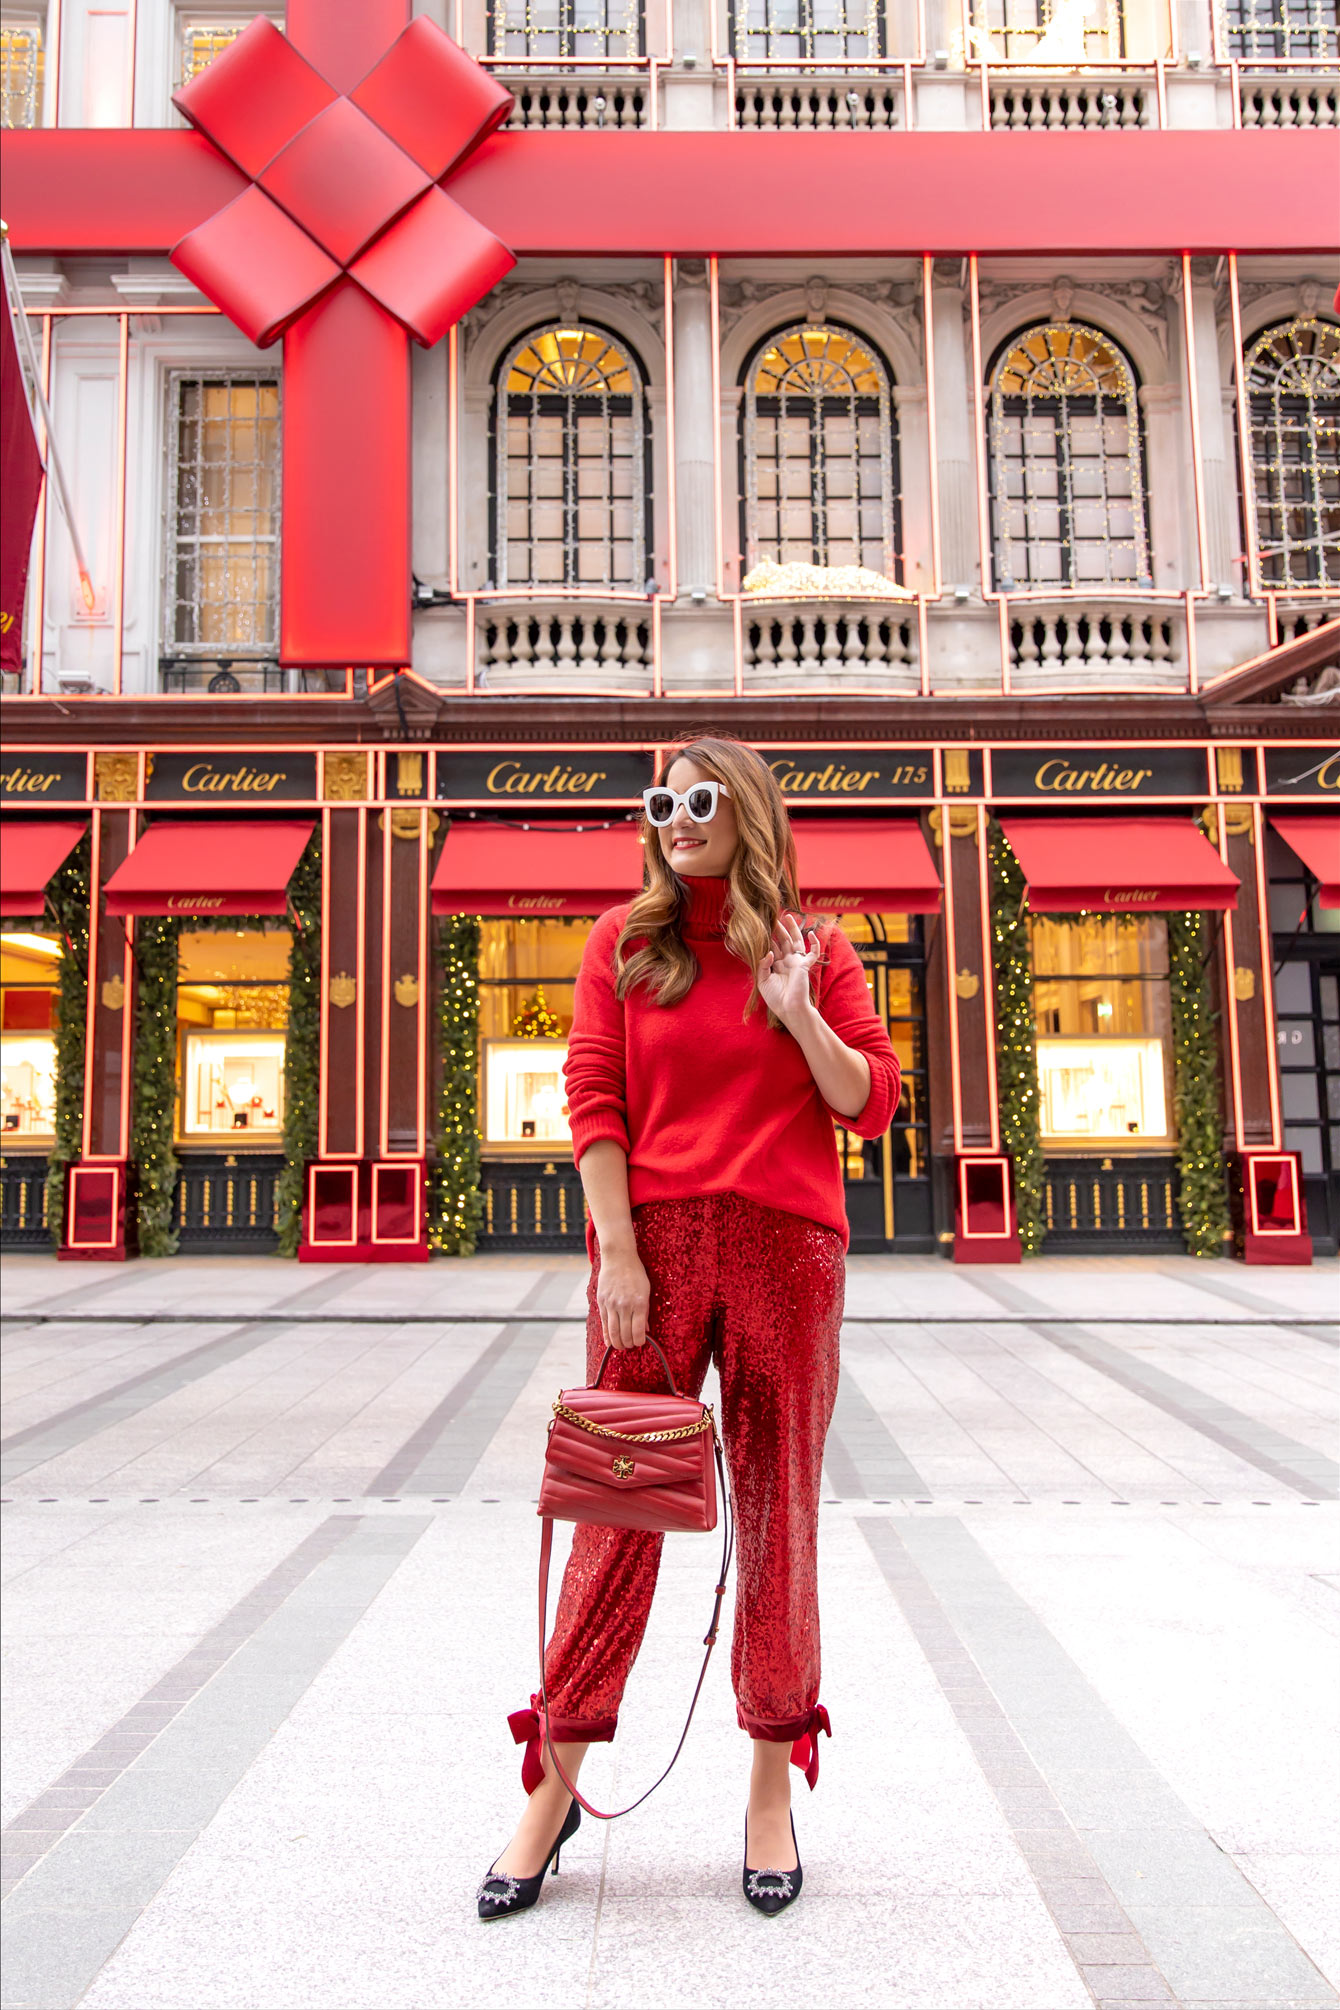 Cartier Boutique Red Bow Holiday